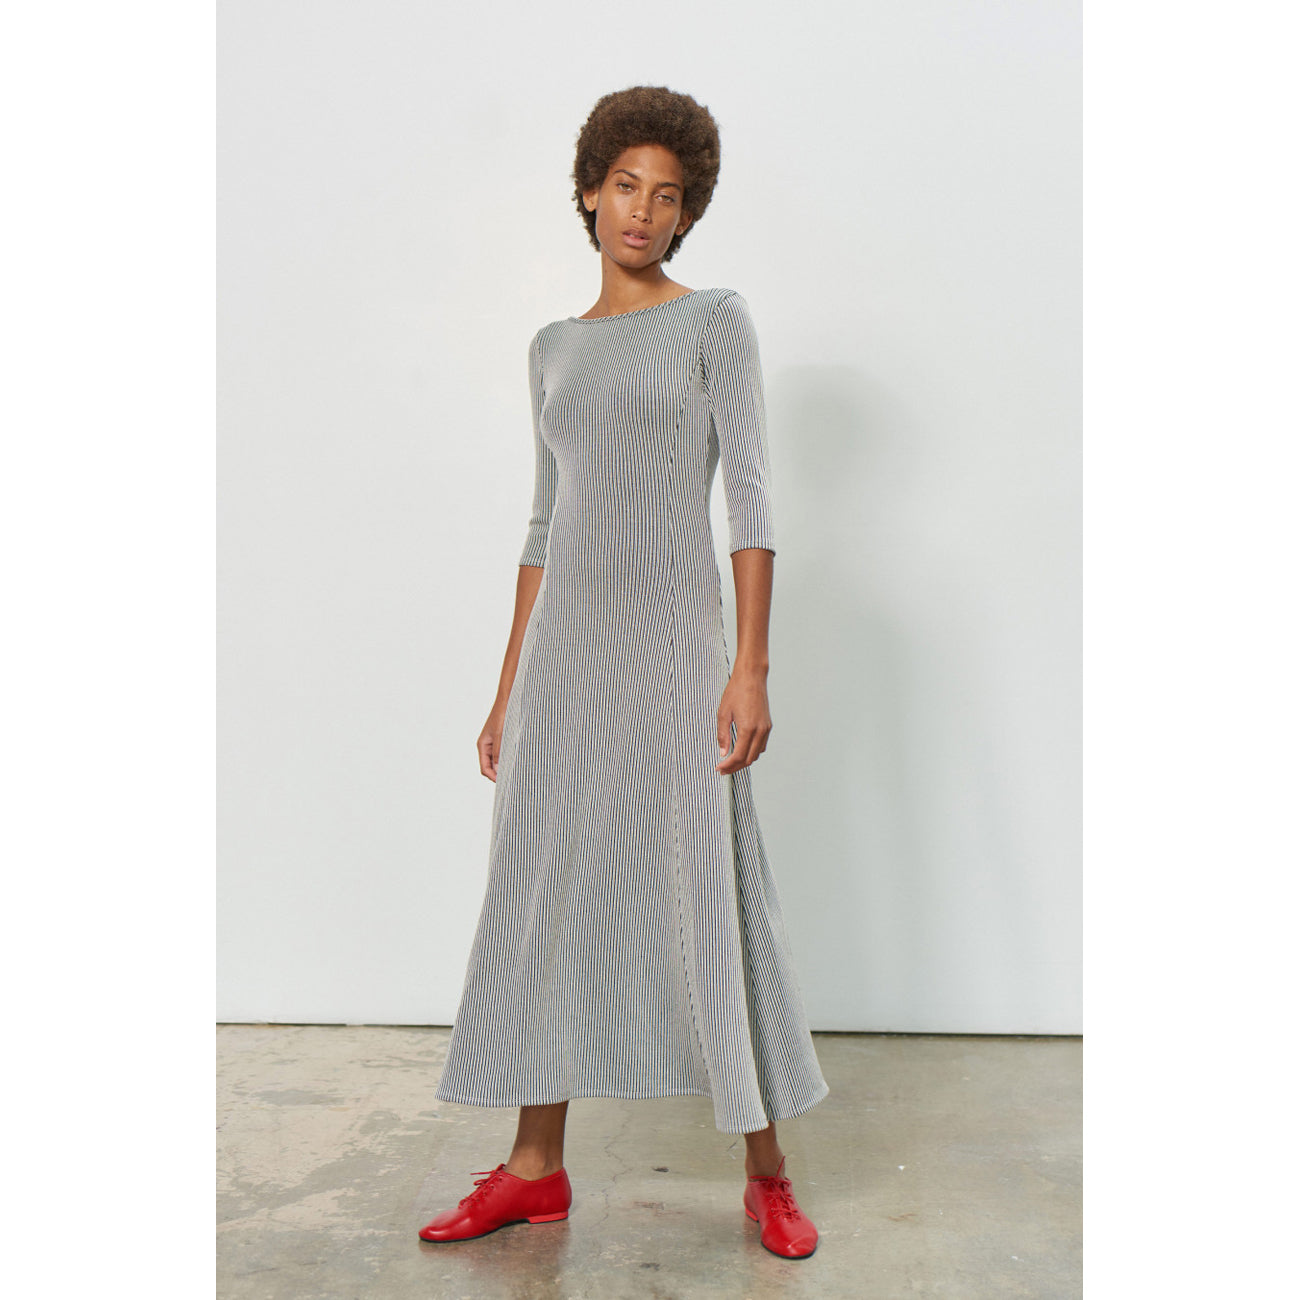 Mara Hoffman Sequana Dress